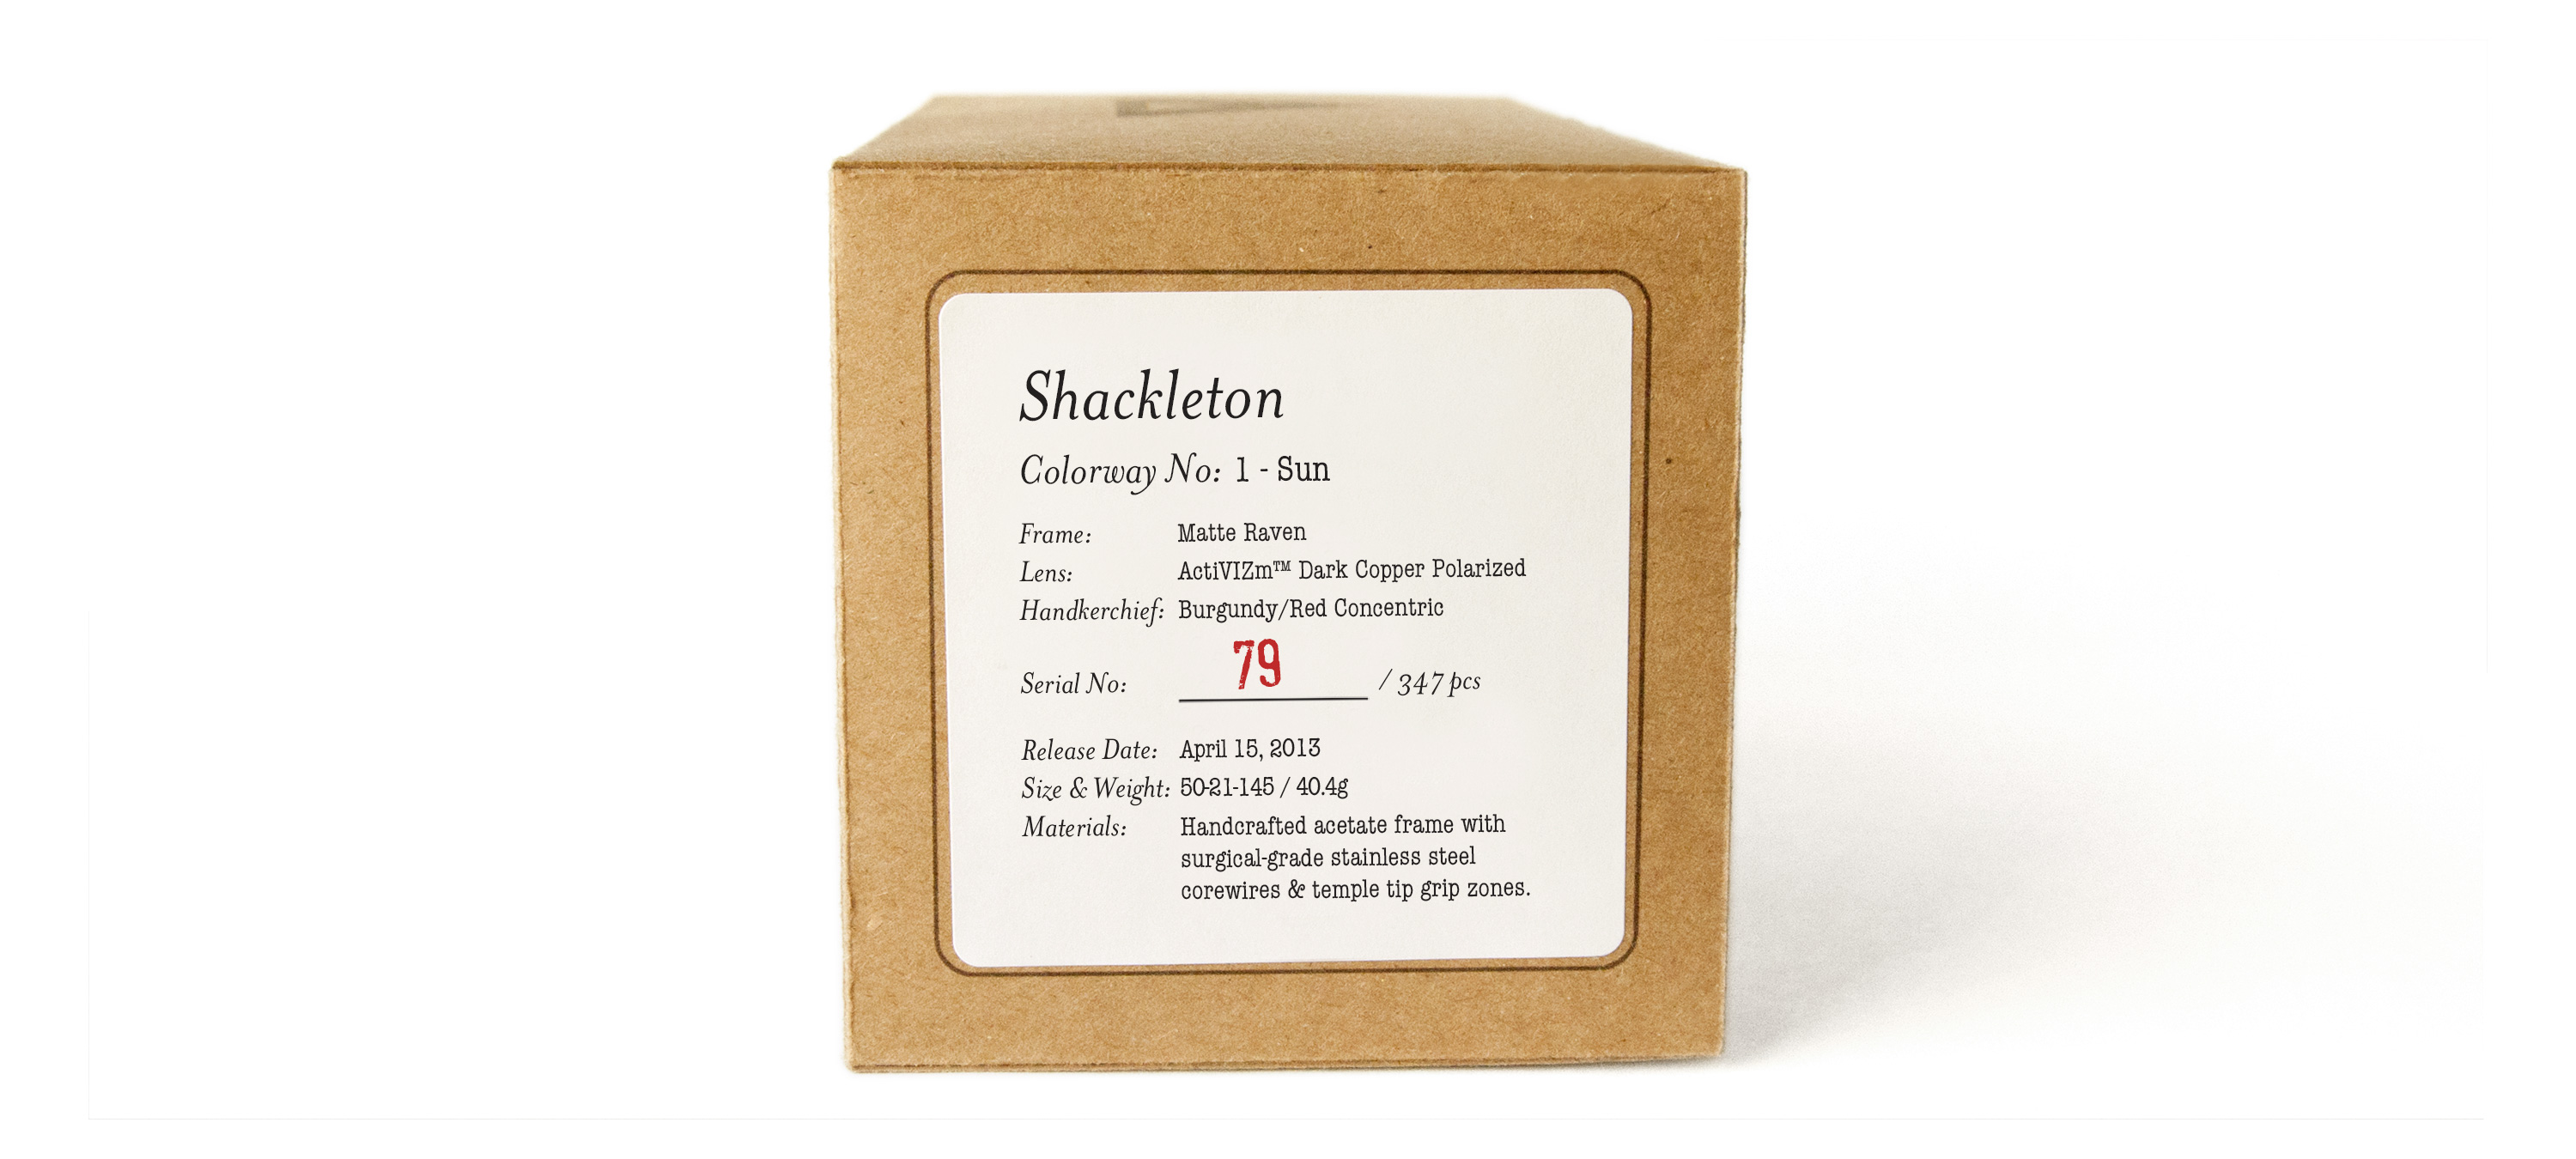 outer_pkg_label_shackleton_sun_01